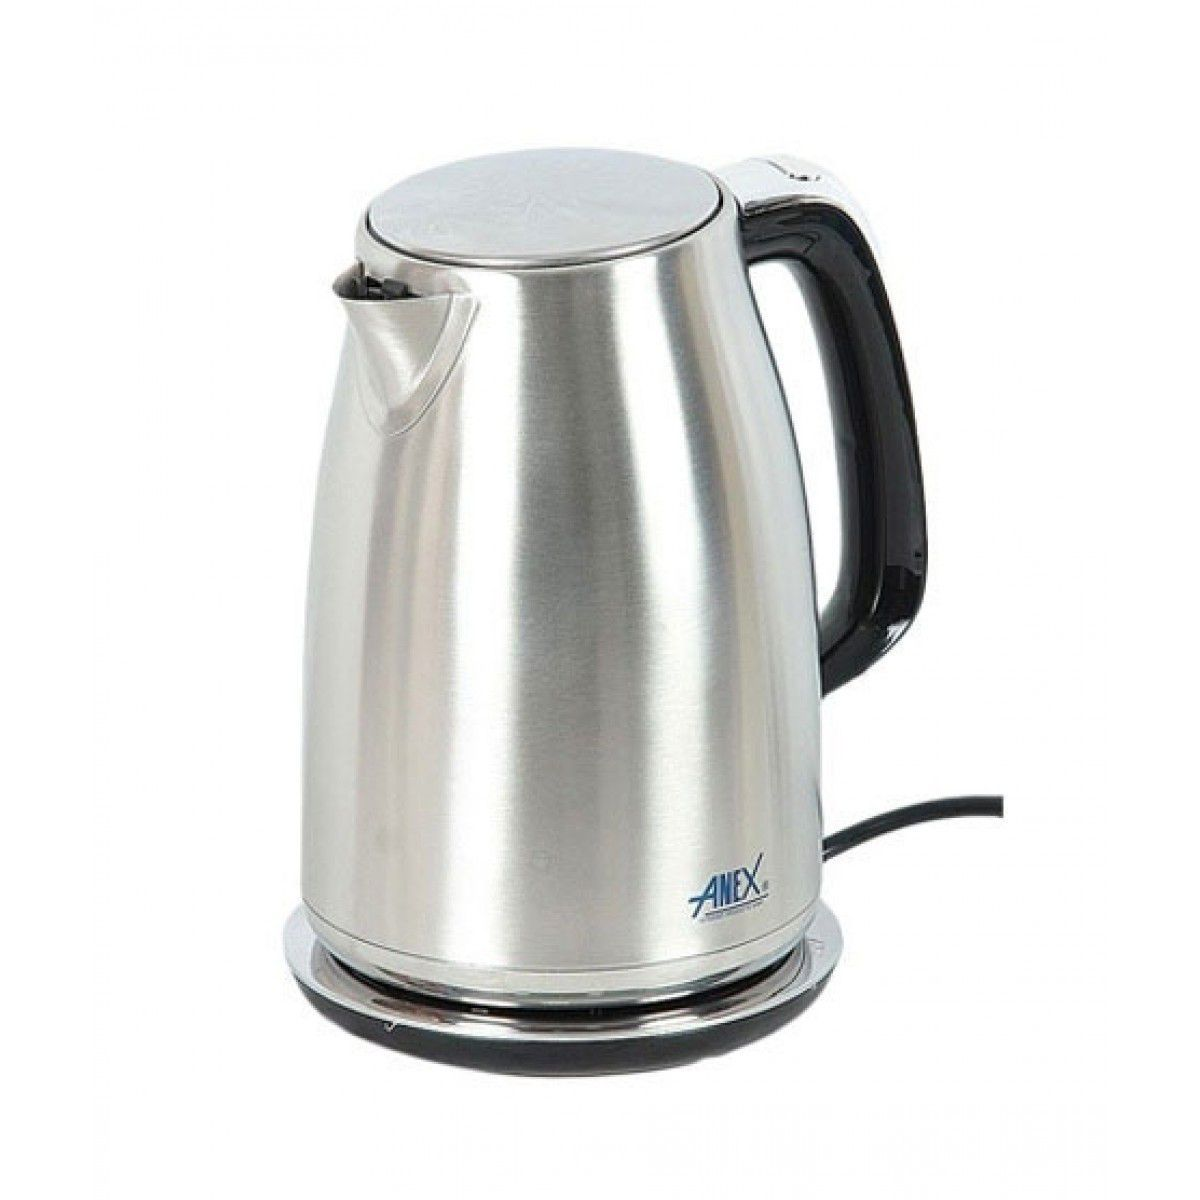 Anex Deluxe Electric Kettle 1.7Ltr AG-4048